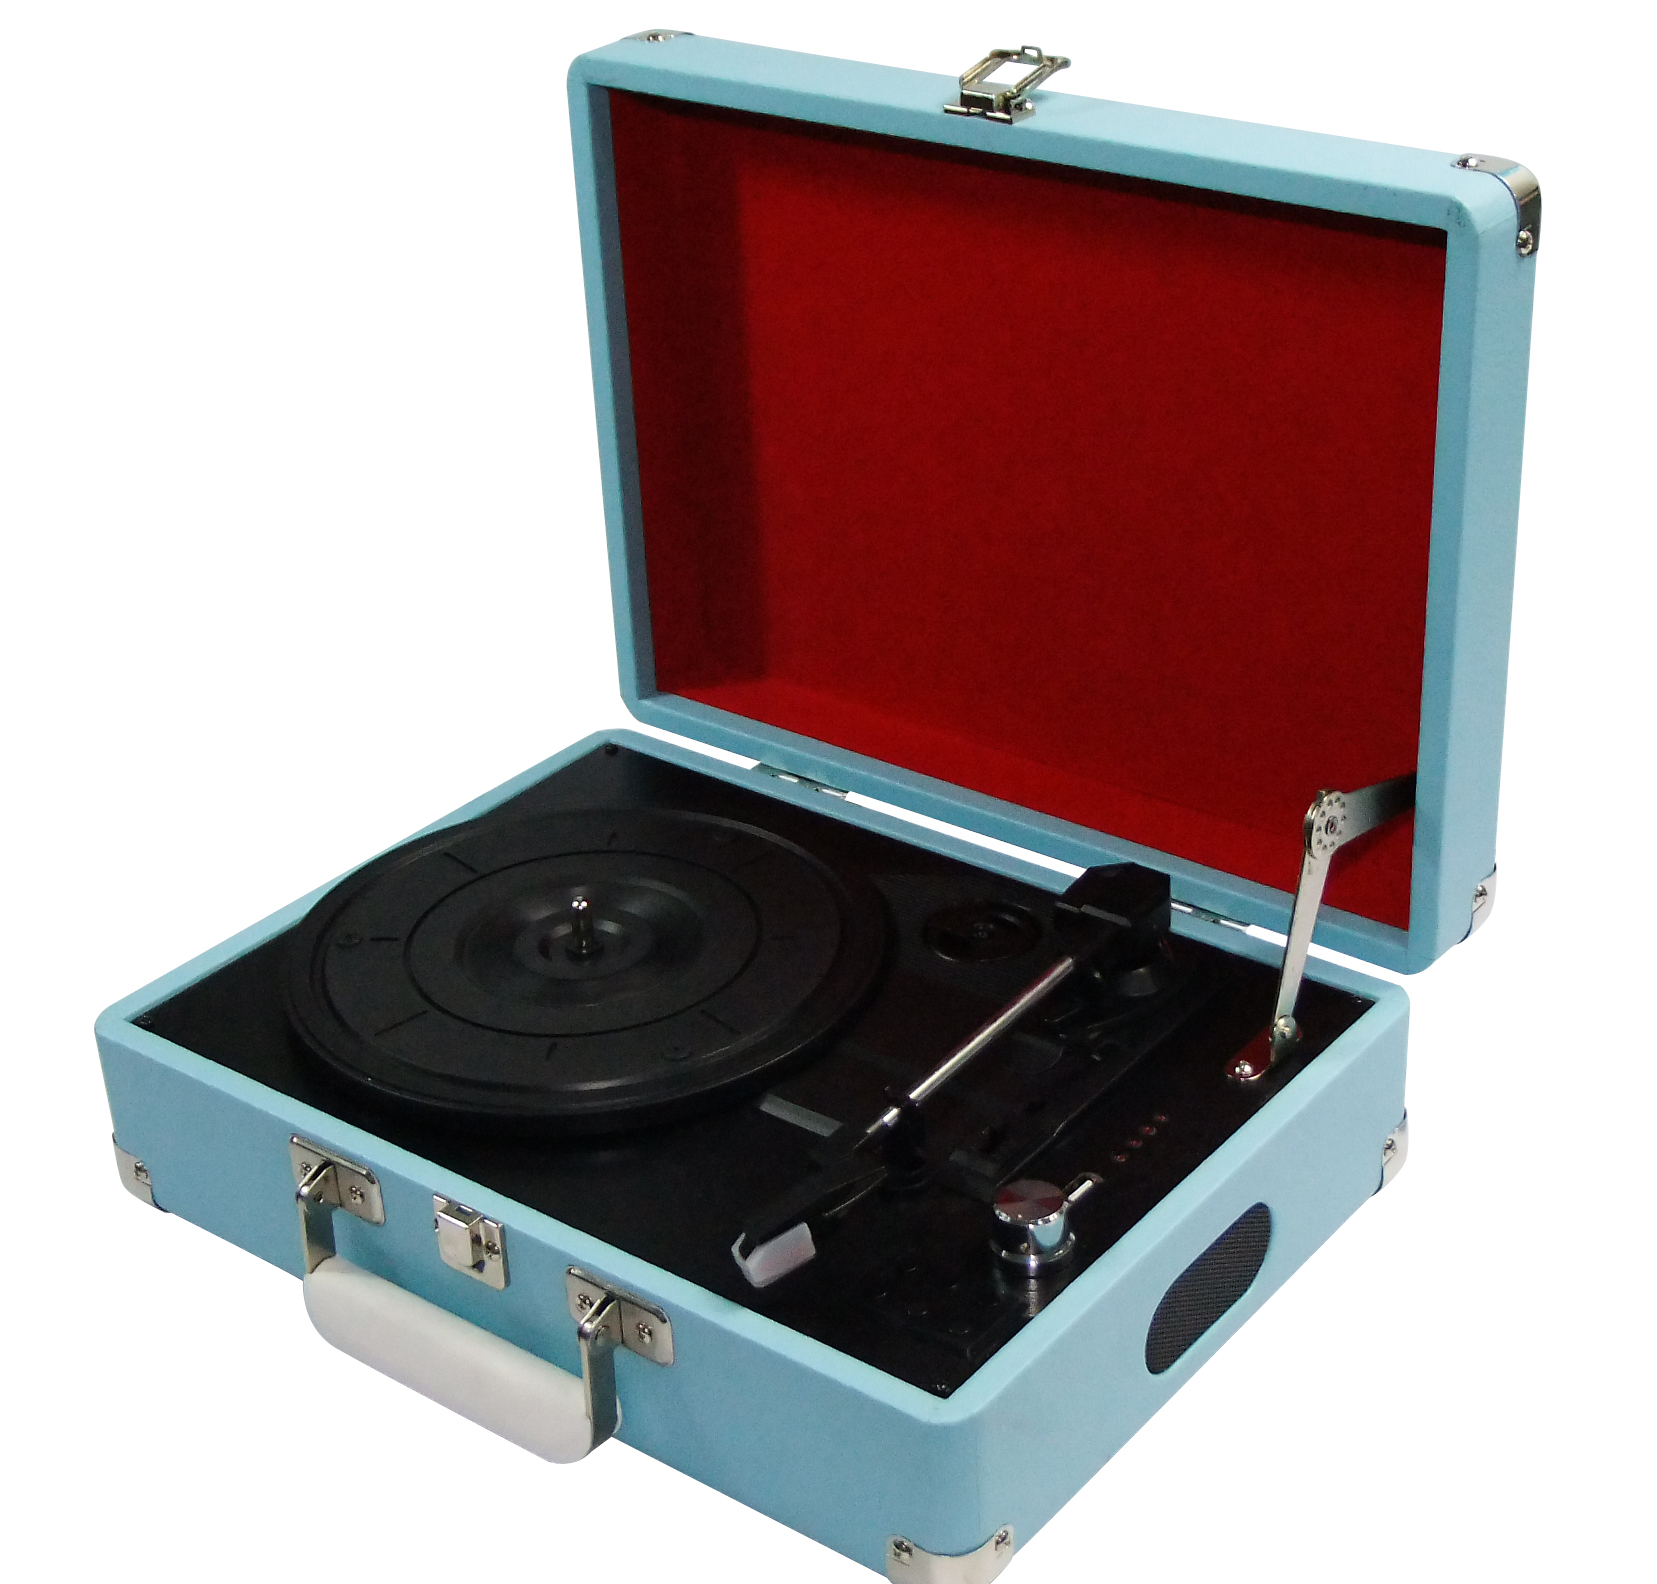 Record players - sky blue, www.iwmshop.org.uk